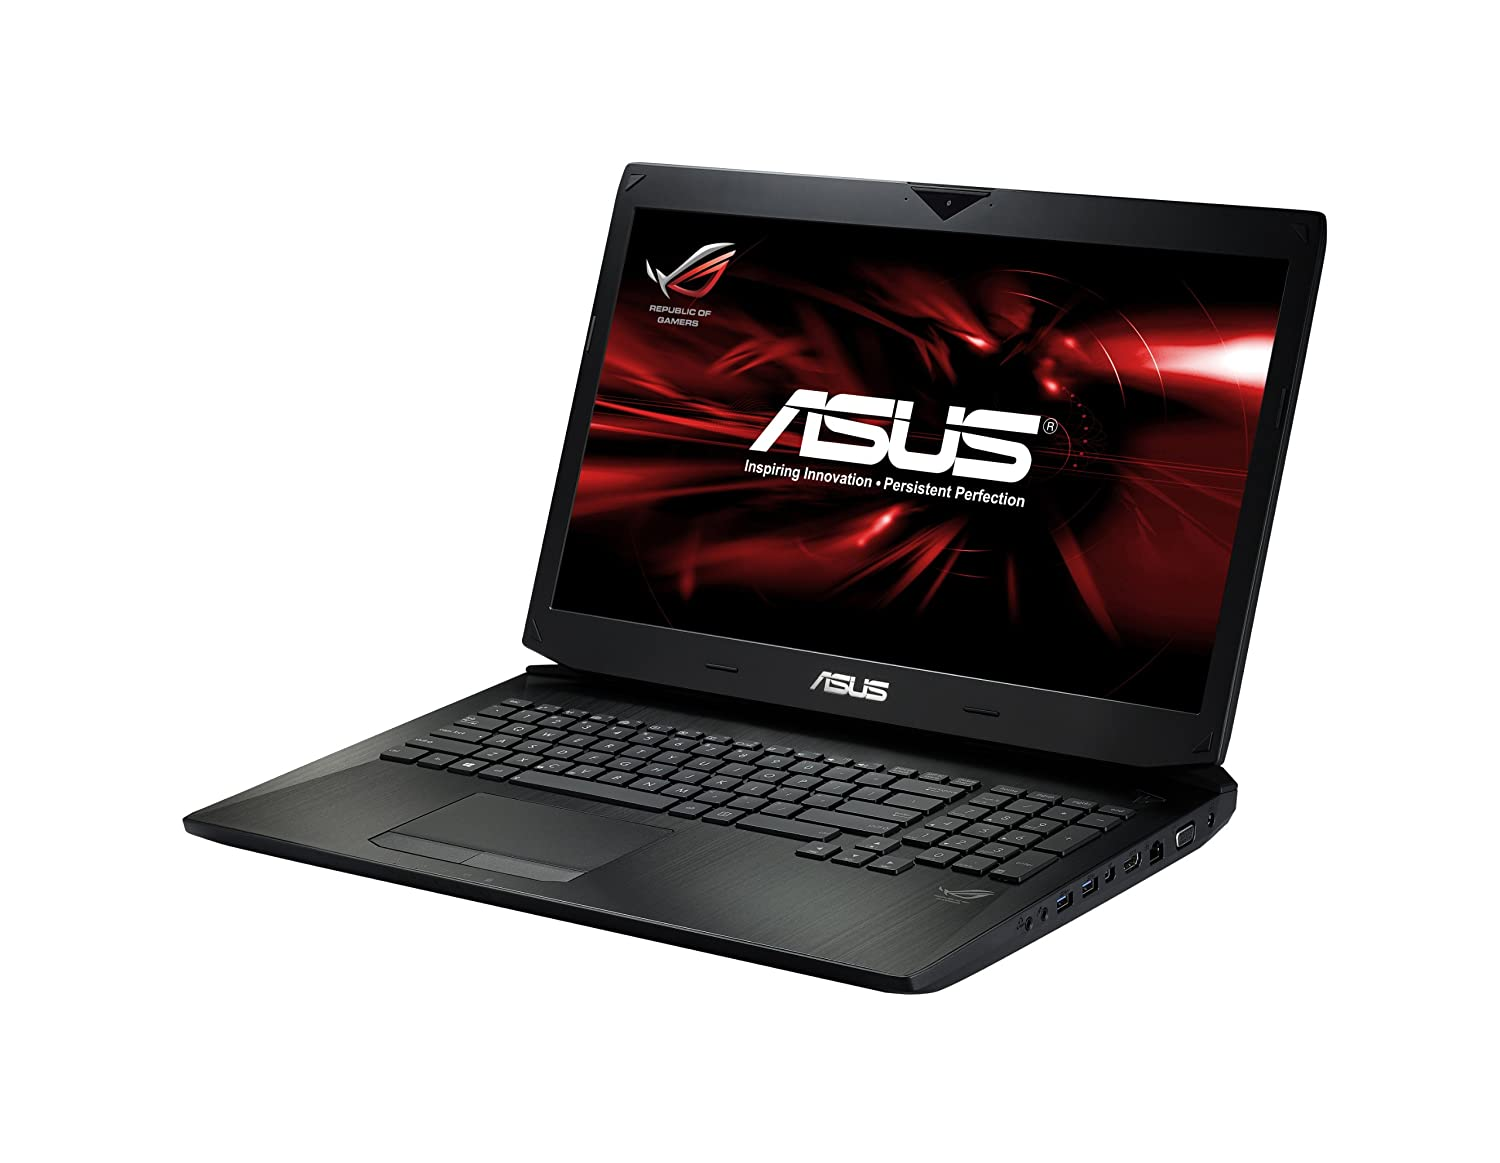 Amazon.com: ASUS ROG G750JX-DH71-CA Laptop - Ordenador portátil (i7-4700HQ, DVD Super Multi, Touchpad, Windows 8, 64-bit, Intel Core i7-4xxx): Computers & ...